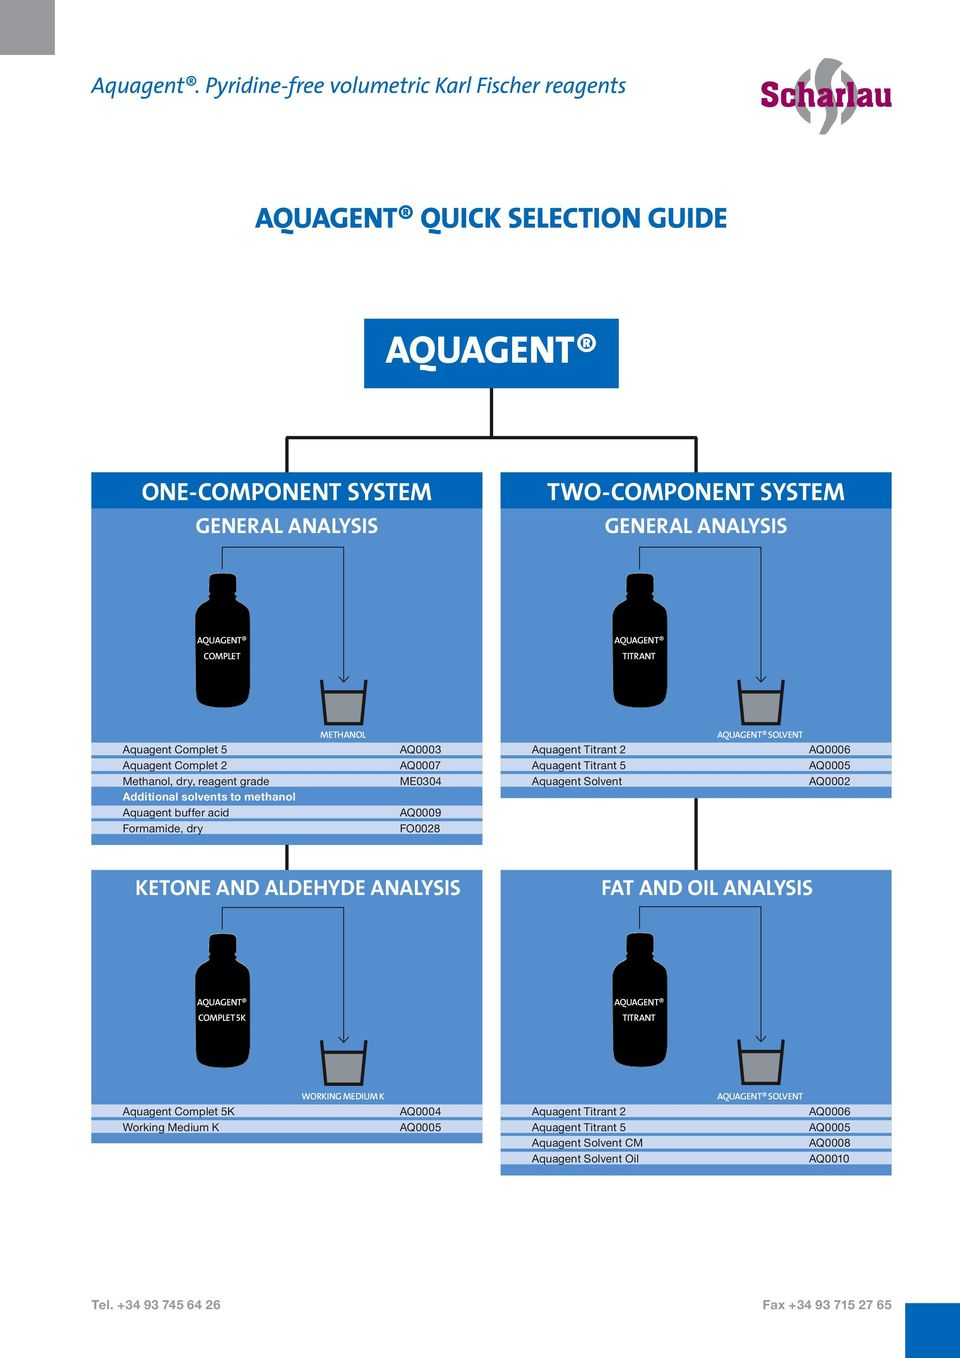 Aquagent buffer acid AQ0009 Formamide, dry FO0028 KETONE AND ALDEHYDE ANALYSIS FAT AND OIL ANALYSIS COMPLET 5K TITRANT WORKING MEDIUM K SOLVENT Aquagent Complet 5K